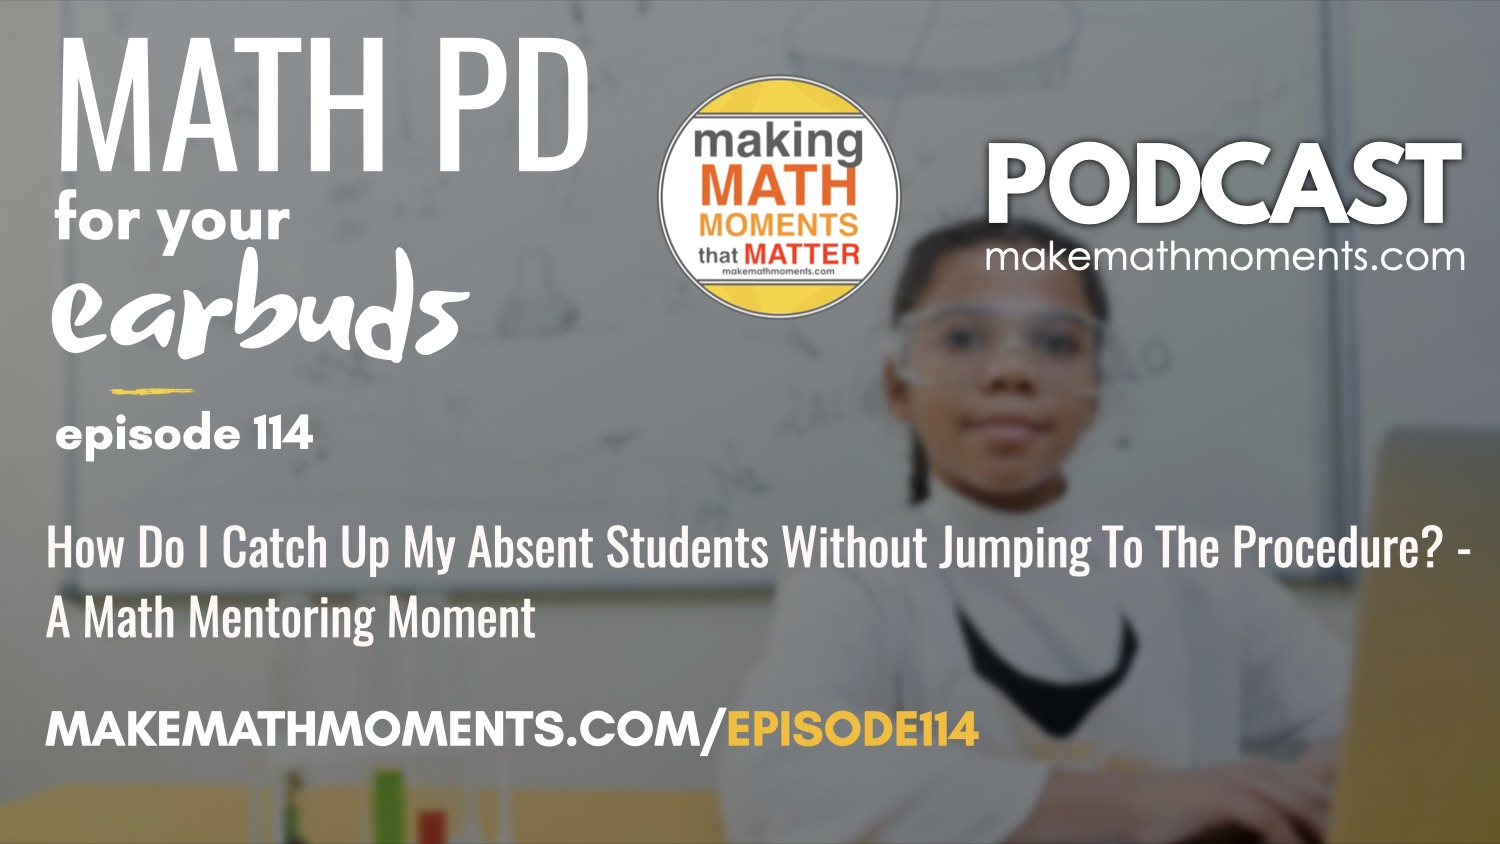 Episode #114: How Do I Catch Up My Absent Students Without Jumping To The Procedure? – A Math Mentoring Moment